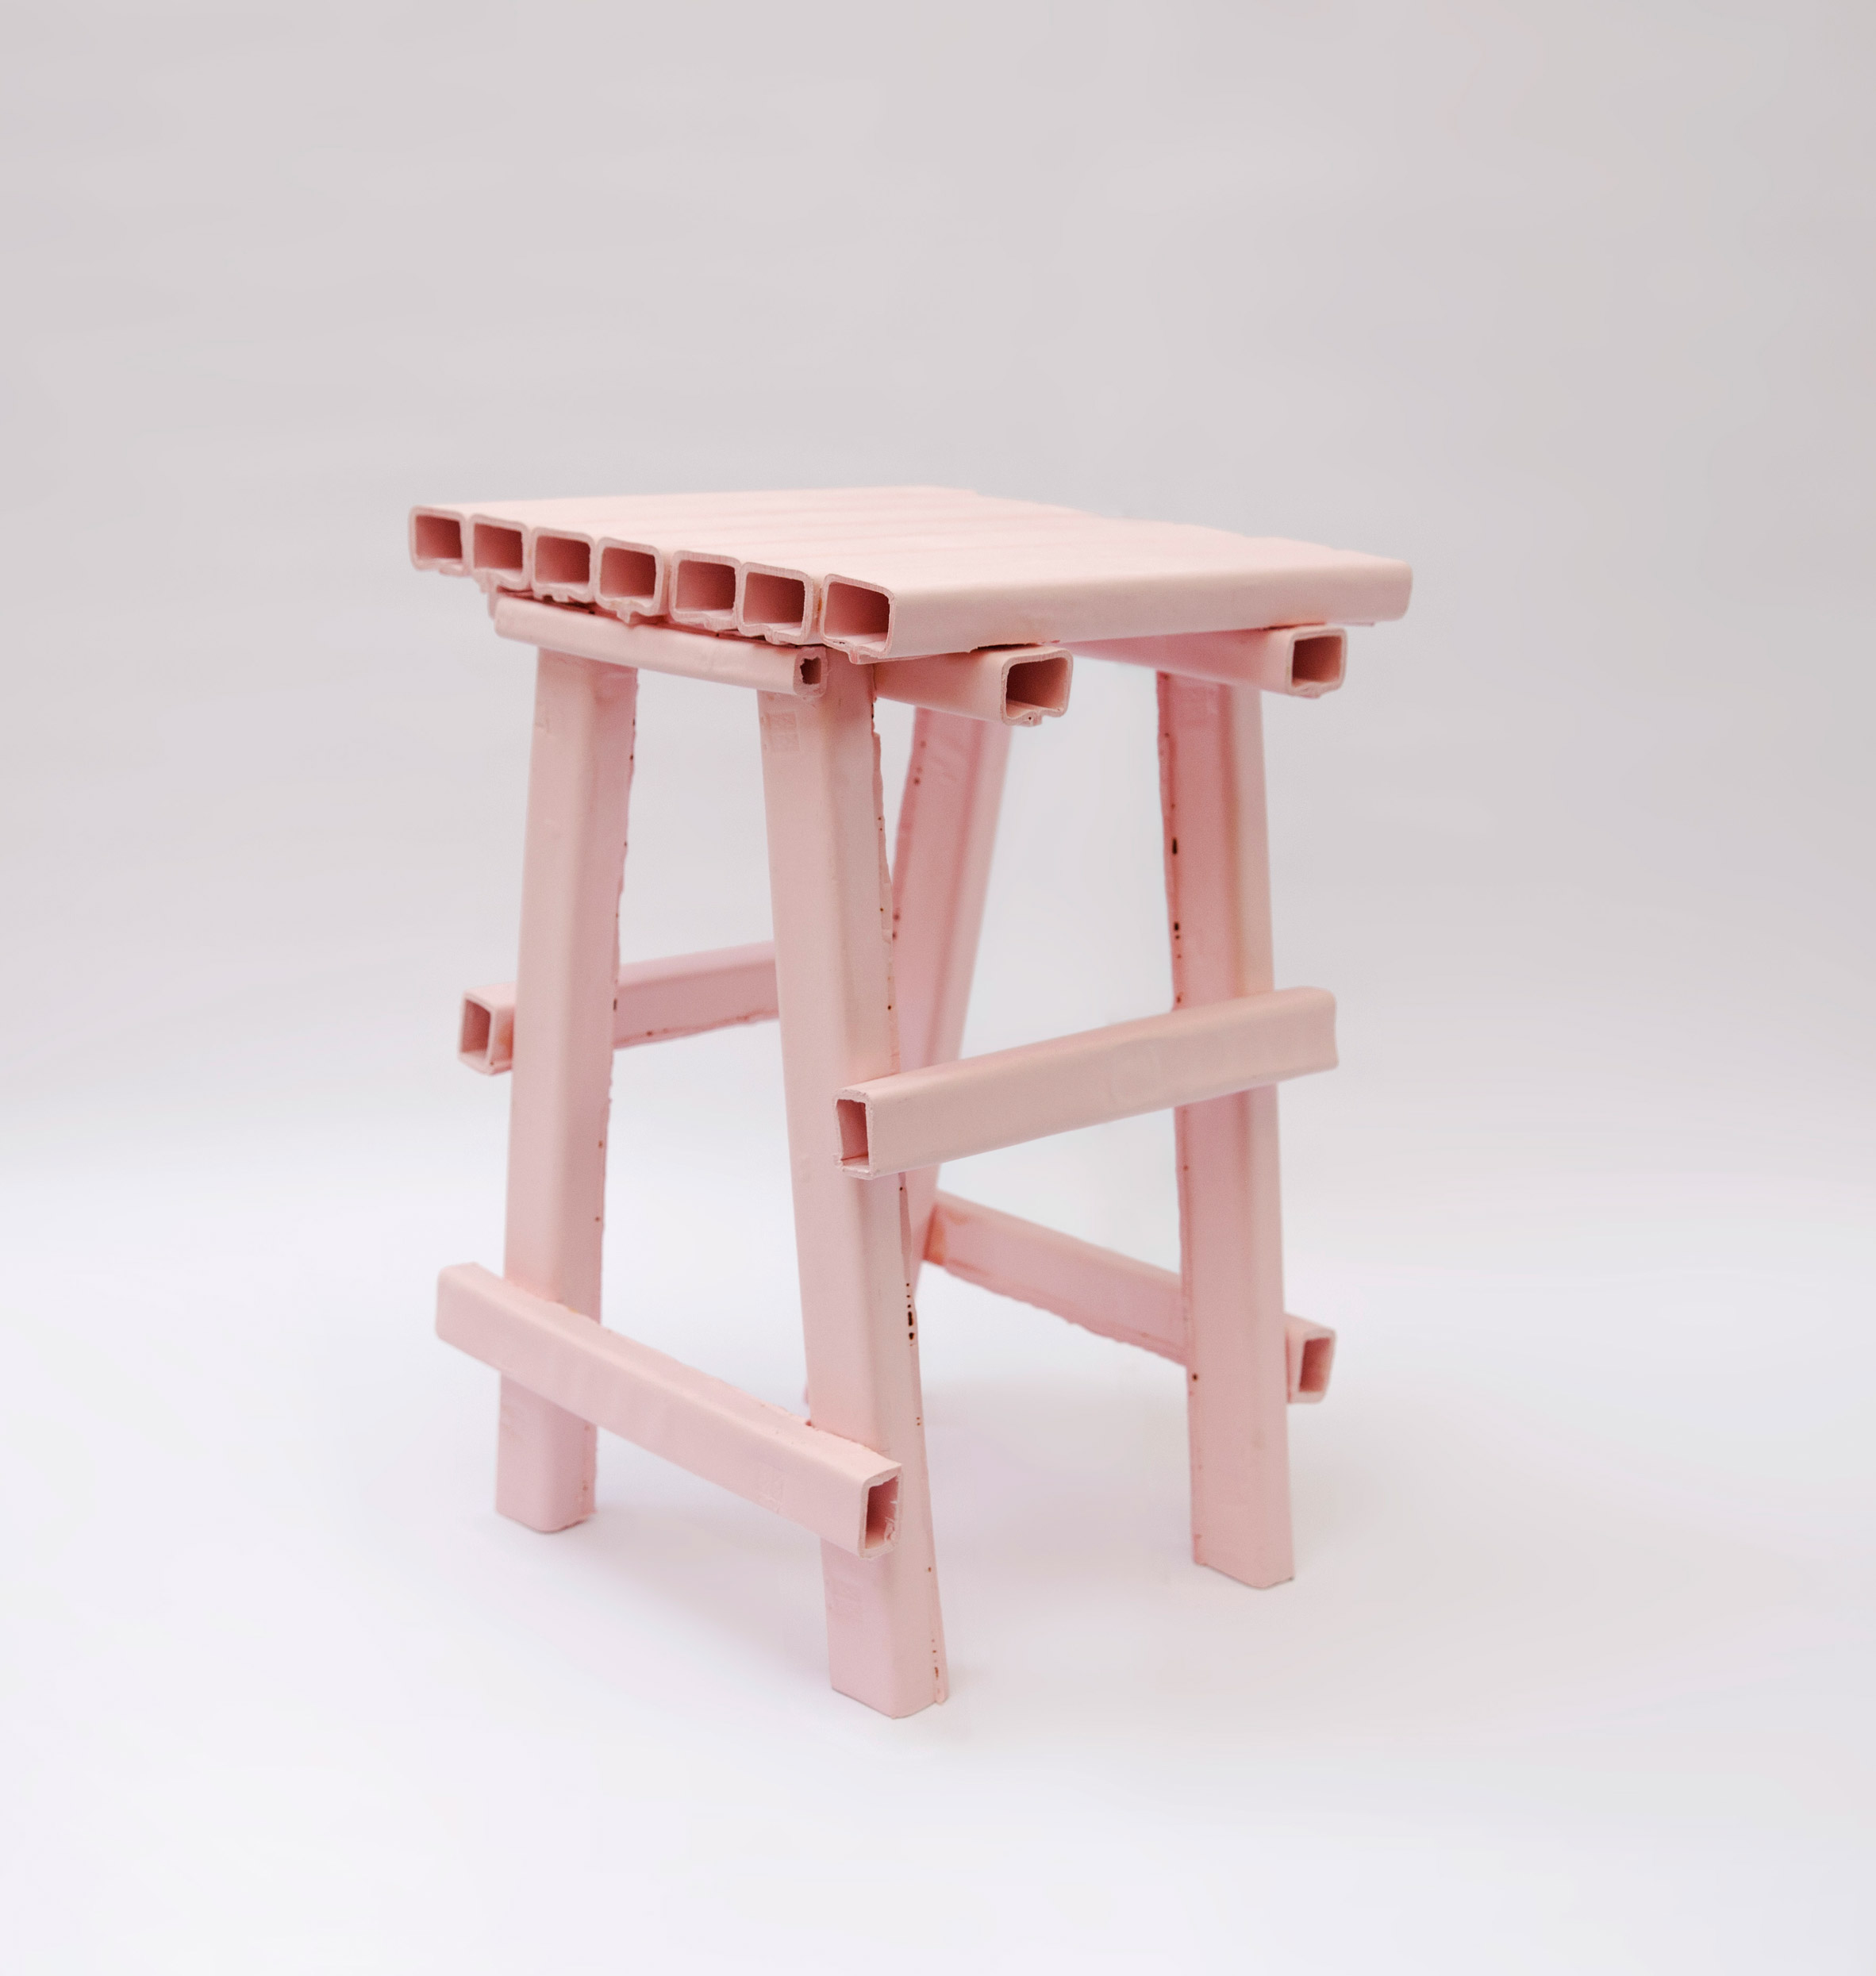 Ying Chang builds furniture out of paper for Malleable State collection